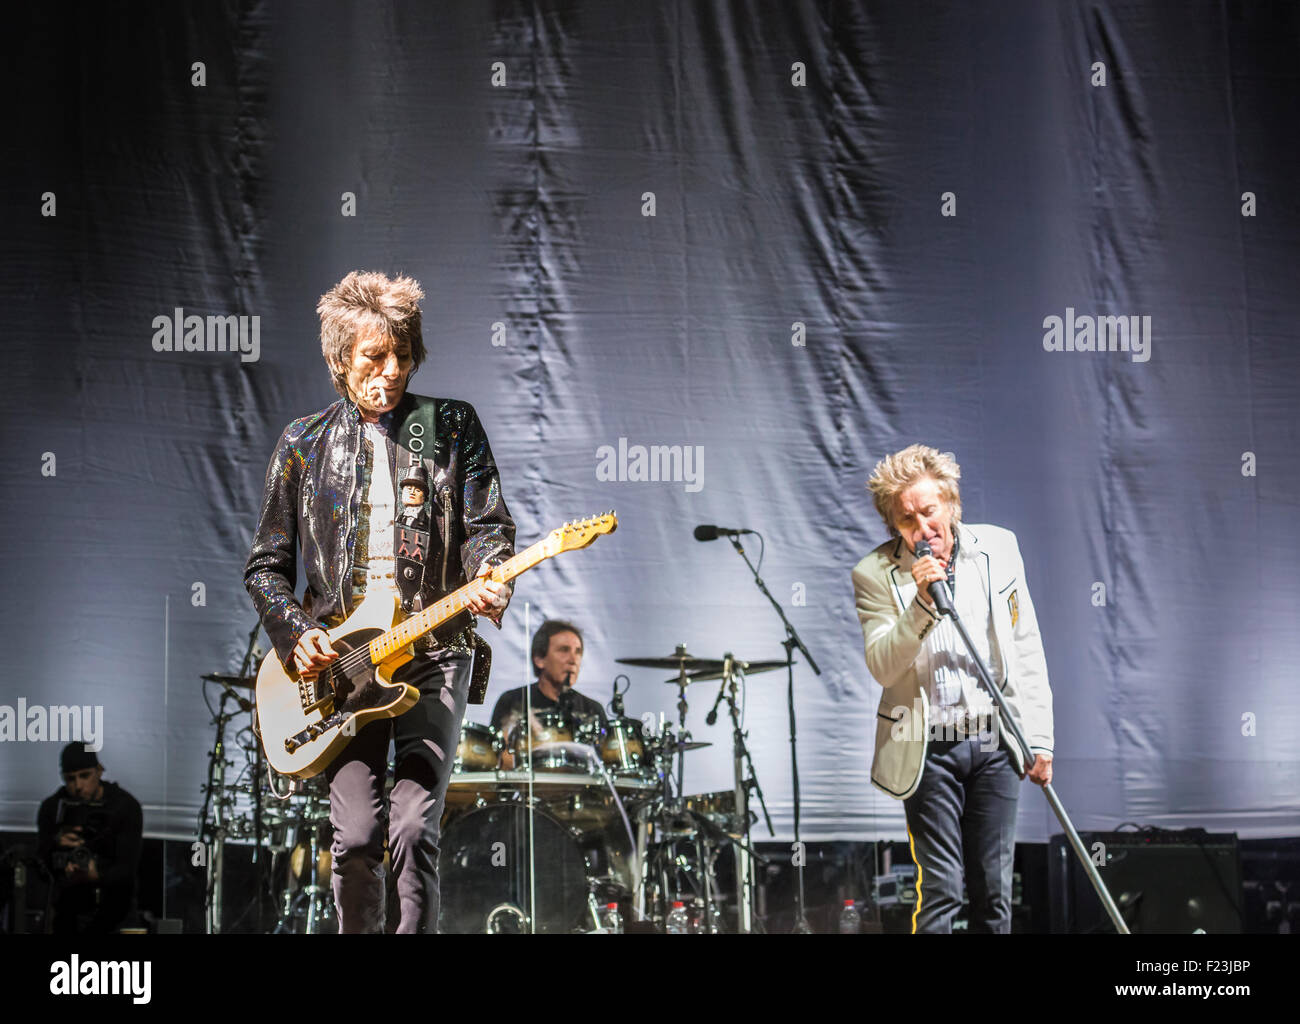 Rod Stewart sings Ronnie Wood smokes. The Faces reunited perform in concert live on stage together in Surrey, in - Stock Image